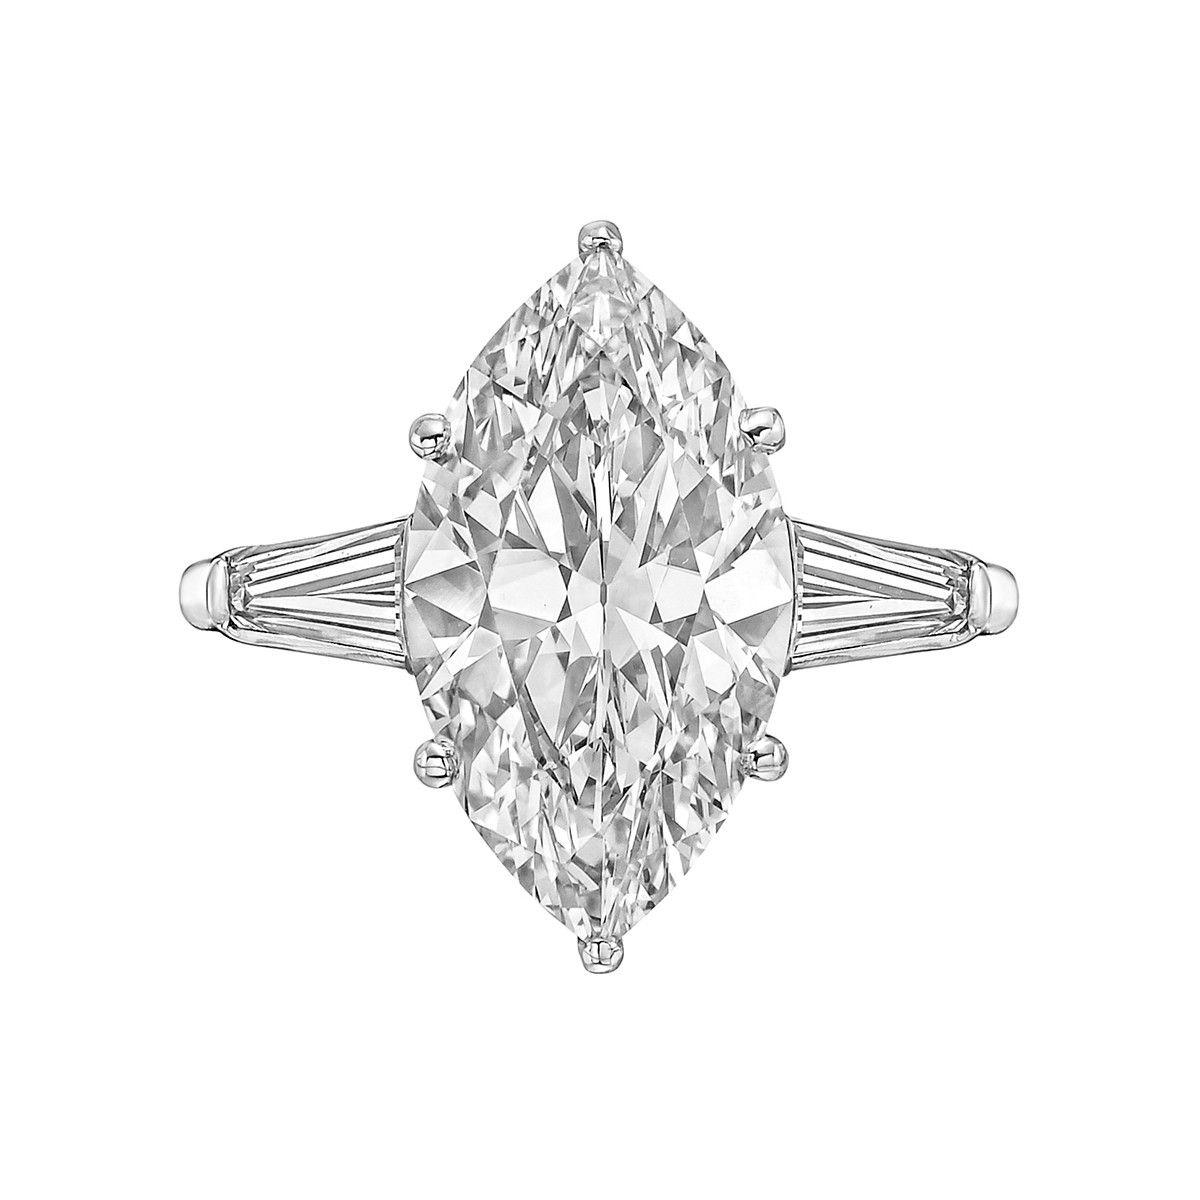 5.09ct Fine Colorless Marquise-Cut Diamond Ring